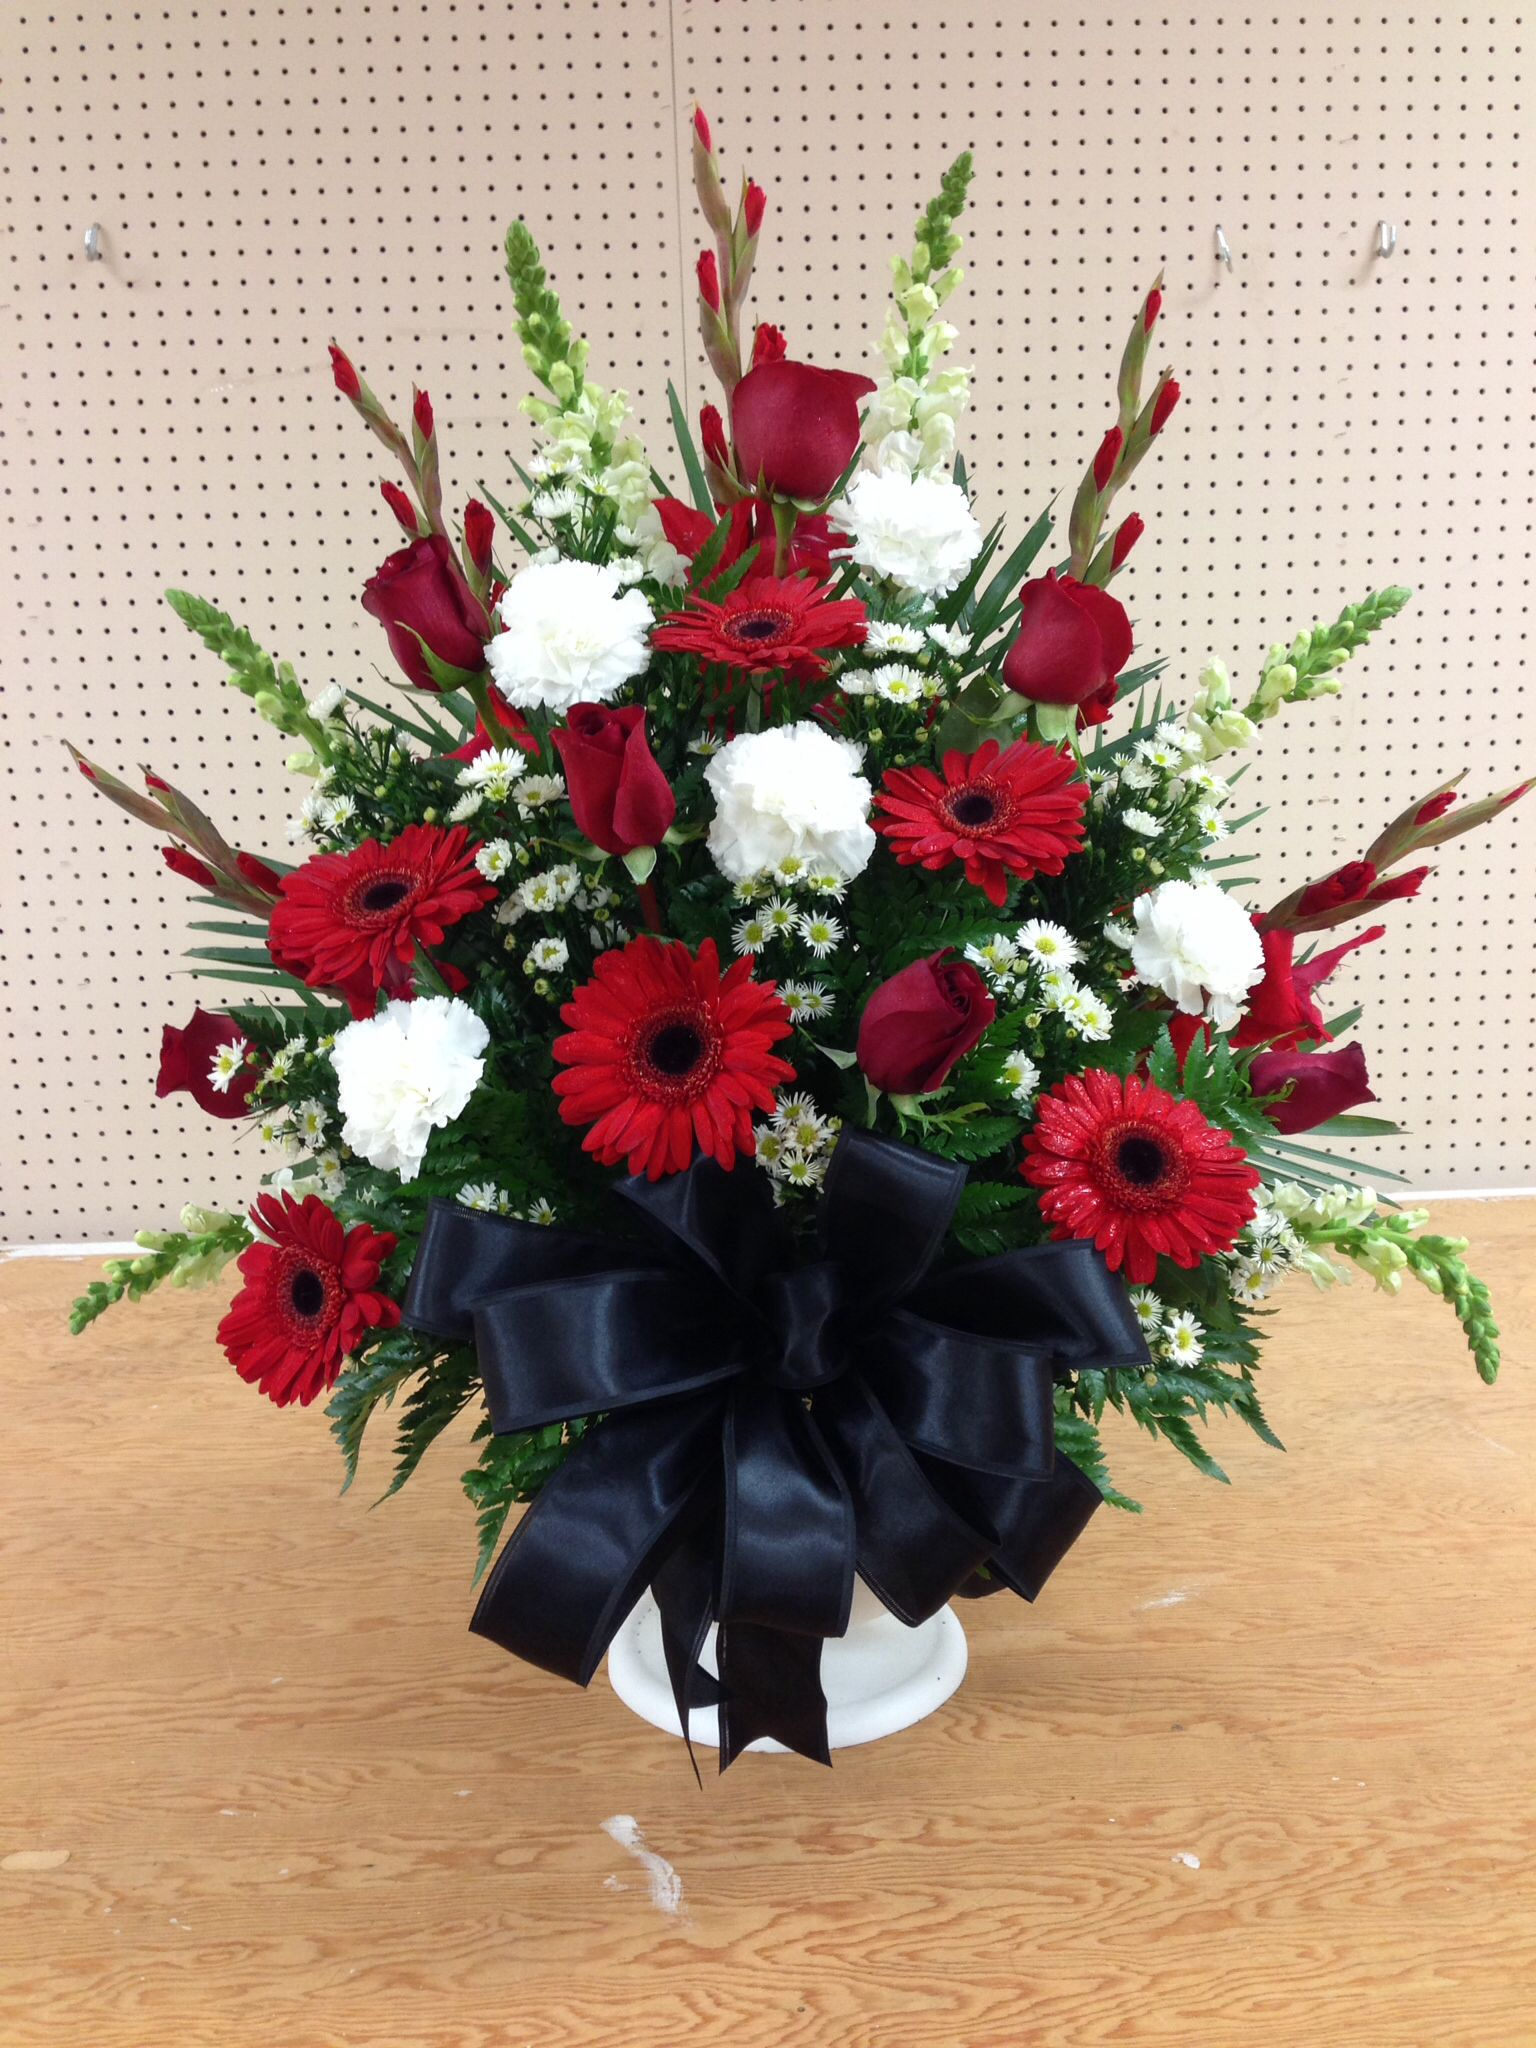 Alter Arrangement Church Flowers Red White And Black Gerber